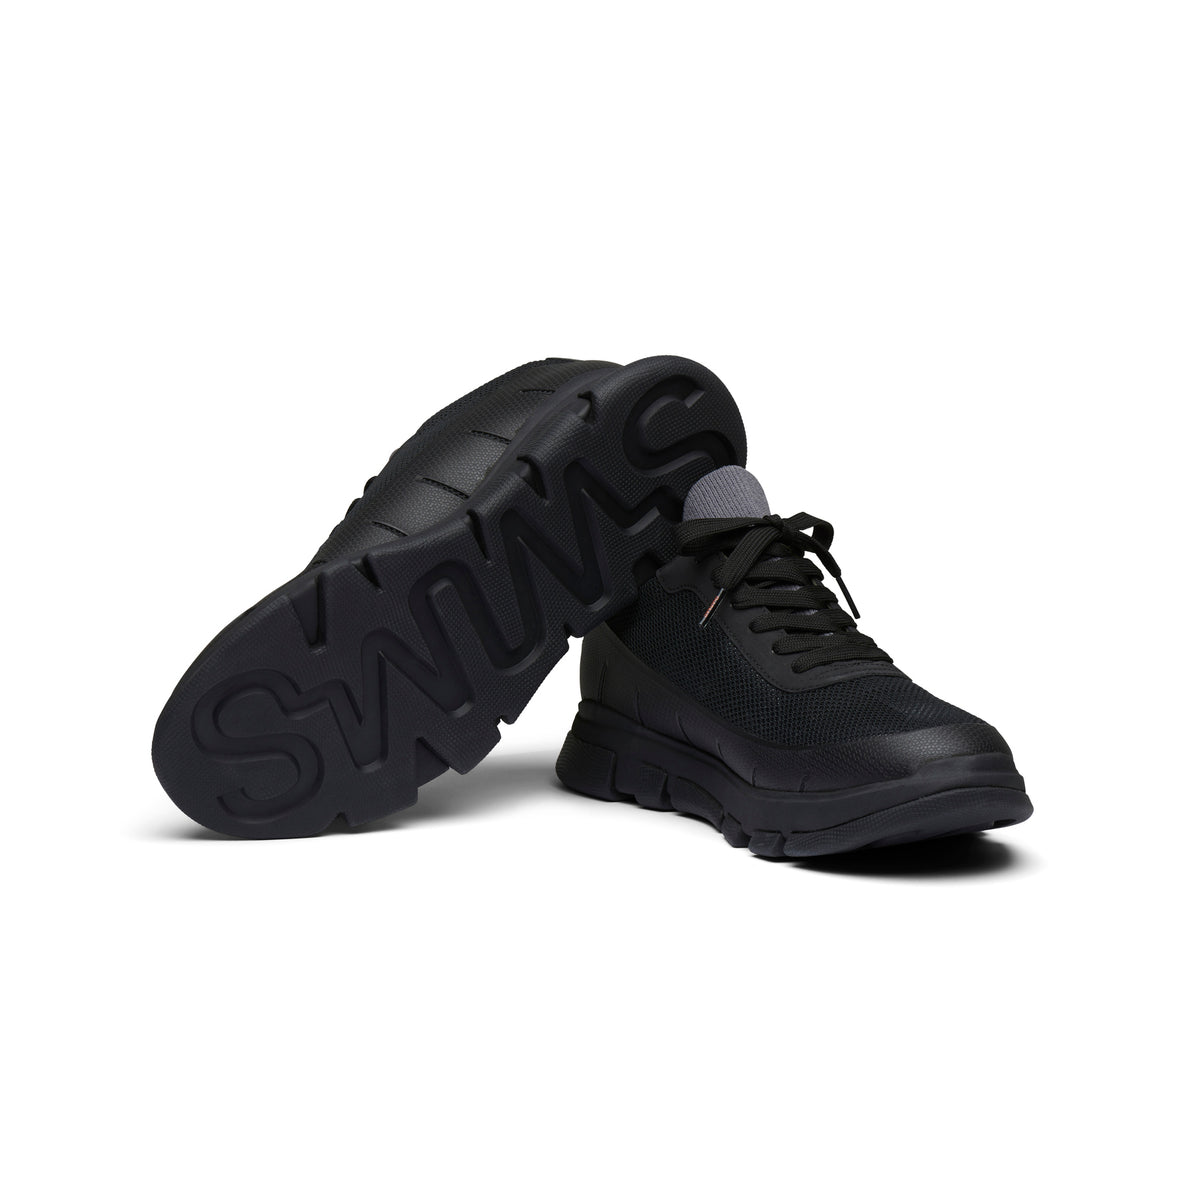 City Hiker Sneaker - background::white,variant::Black/Black